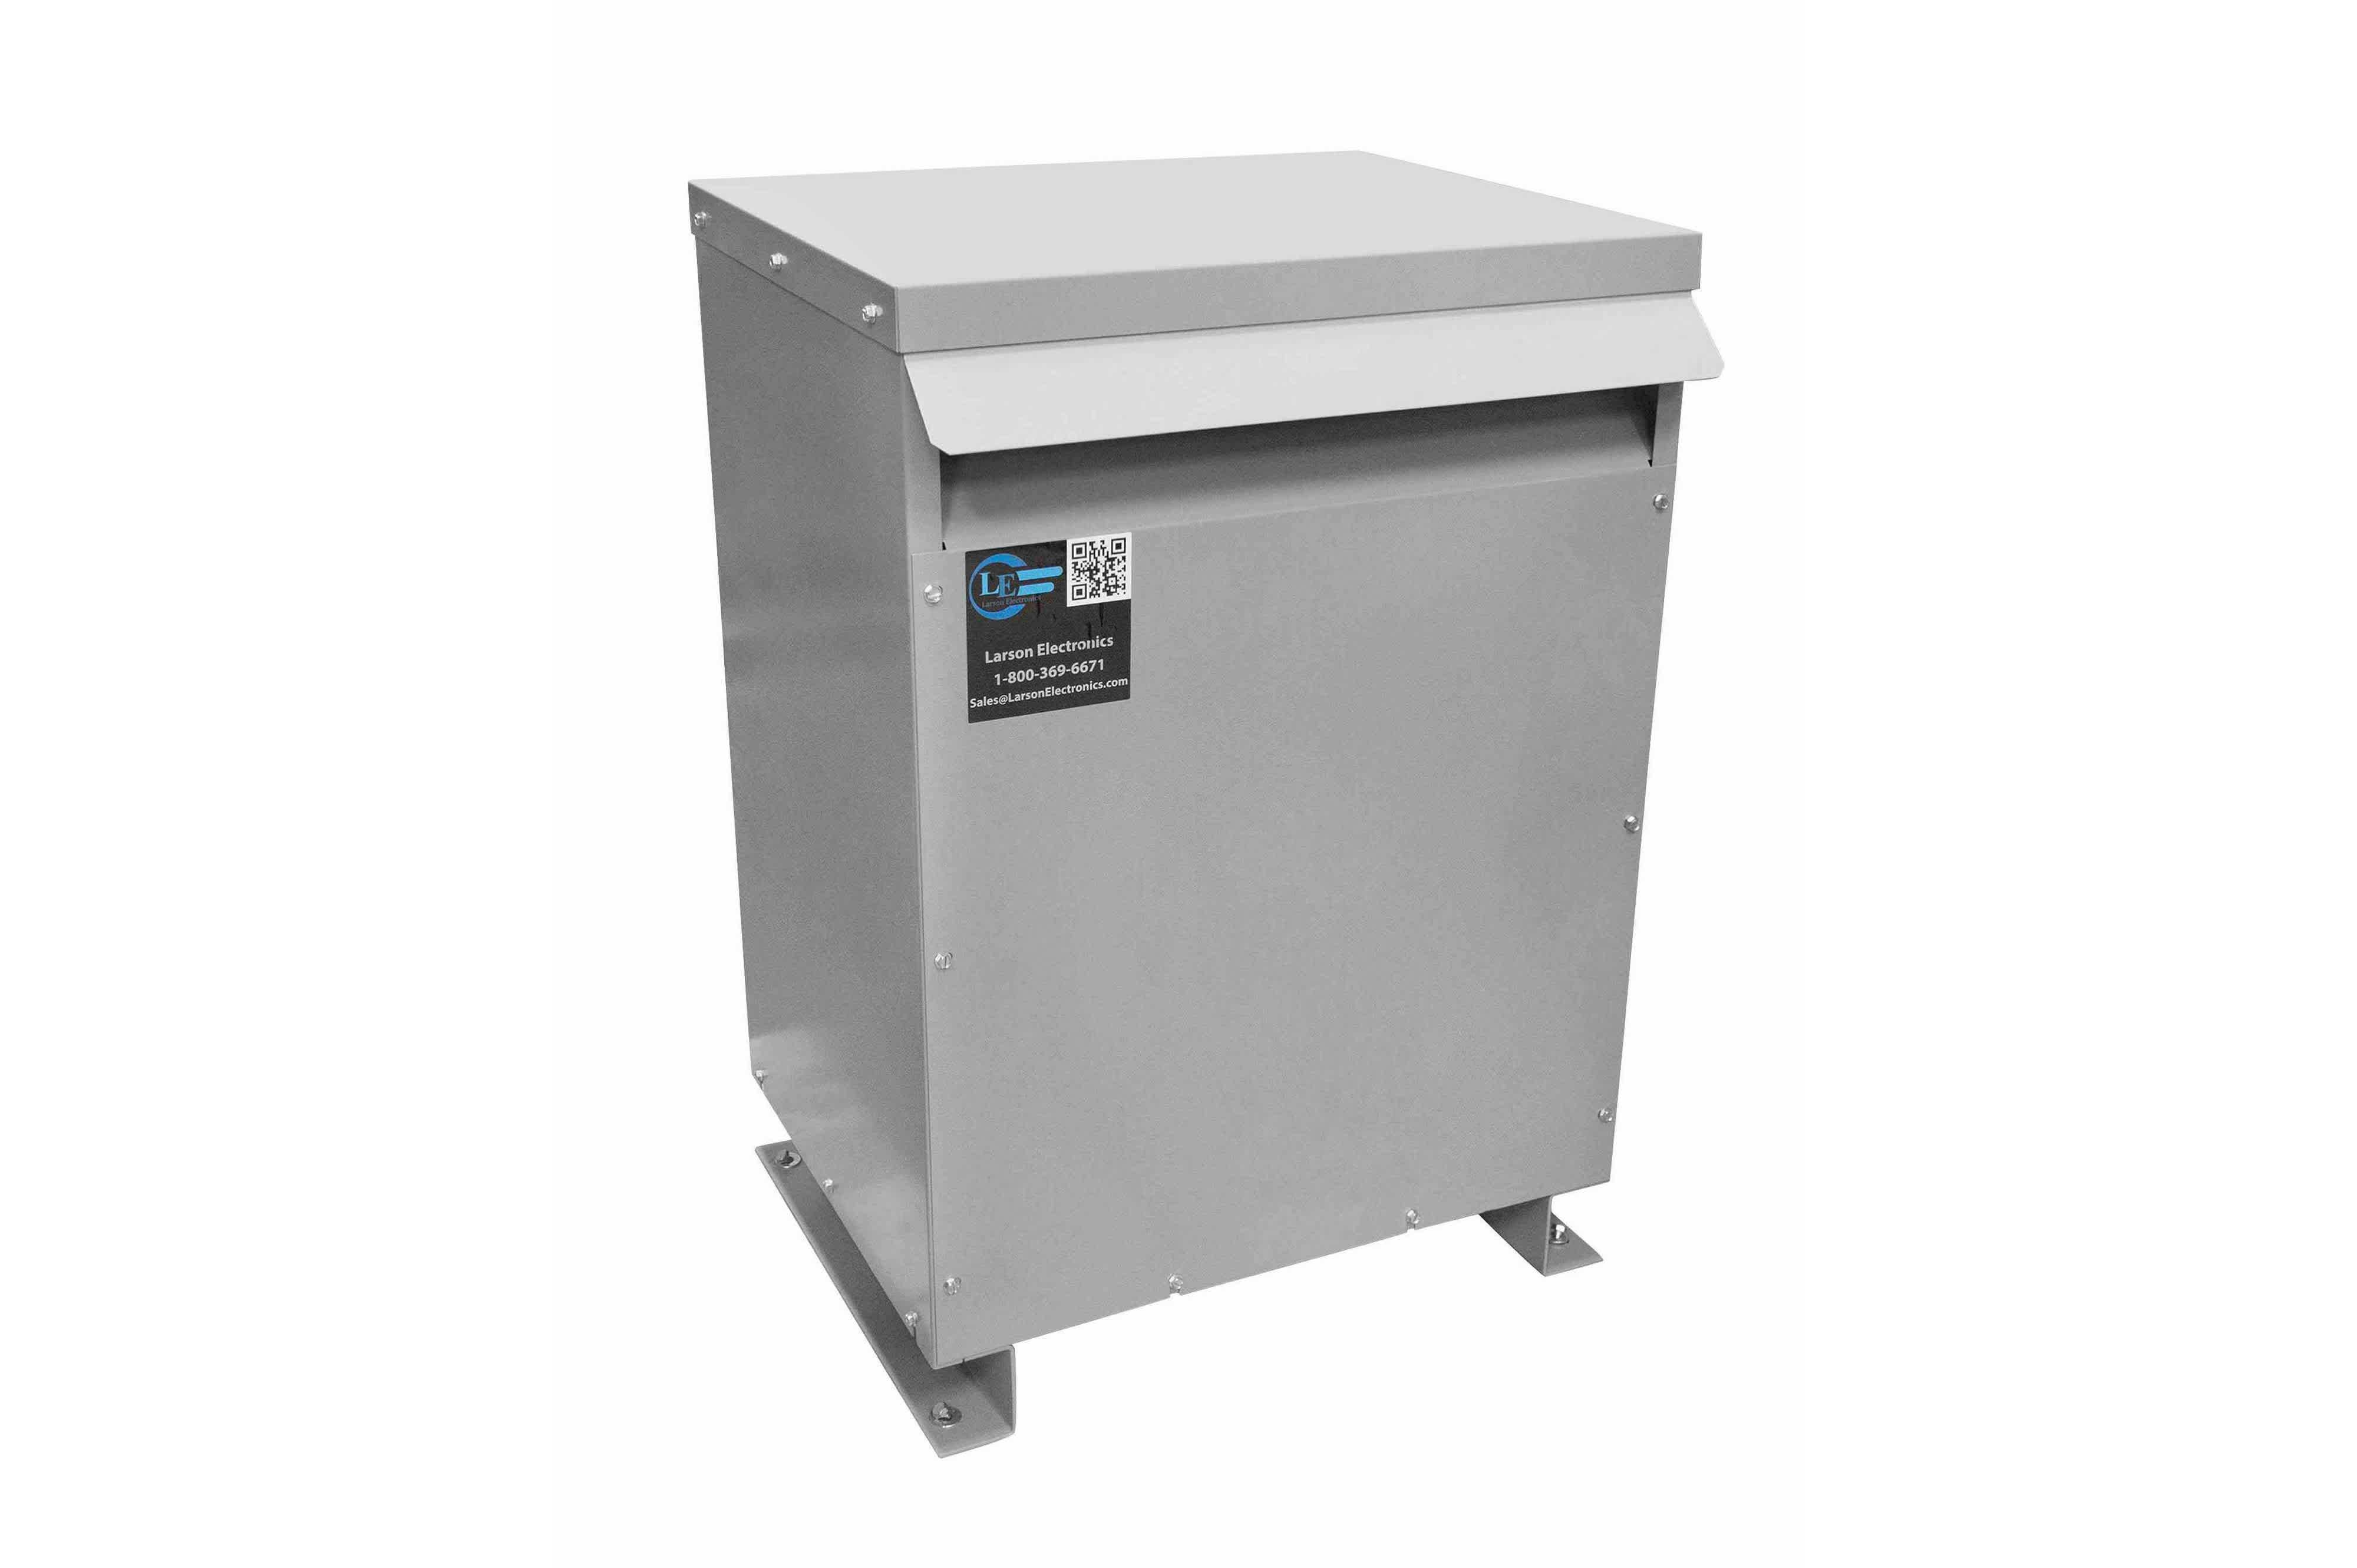 110 kVA 3PH Isolation Transformer, 240V Wye Primary, 208V Delta Secondary, N3R, Ventilated, 60 Hz